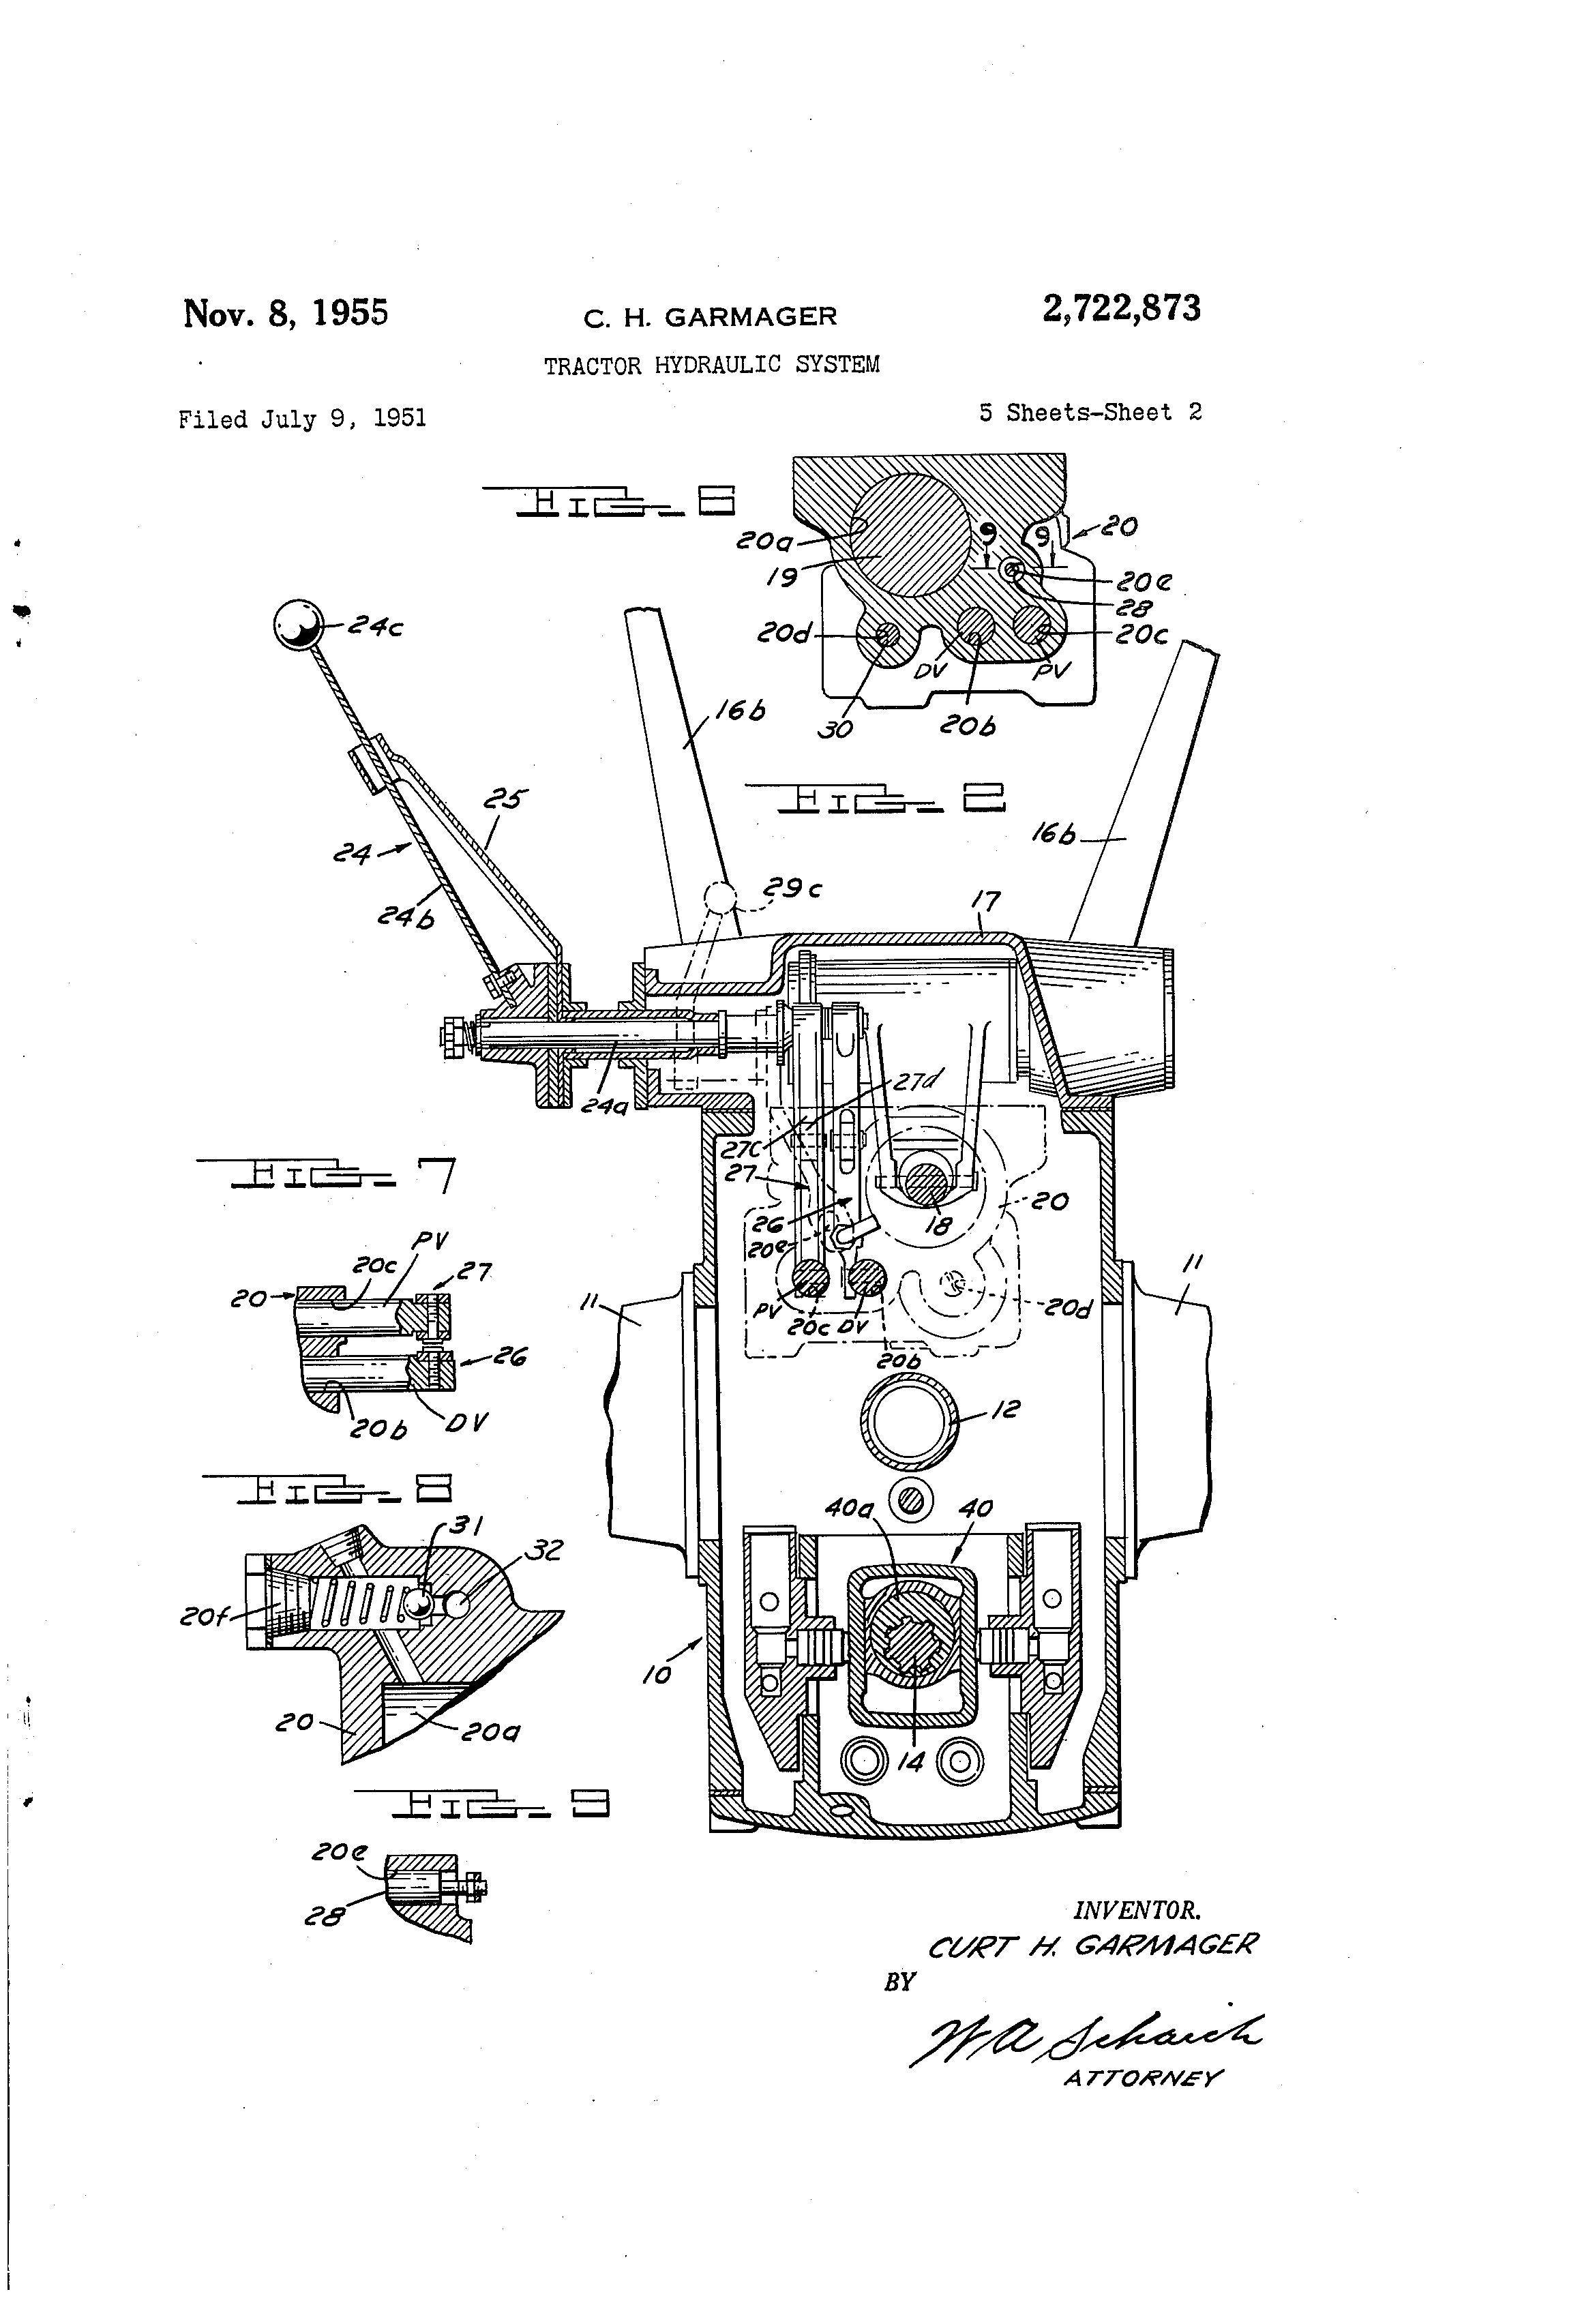 Ford 3000 Hydraulic System Diagram : Ford tractor parts diagram